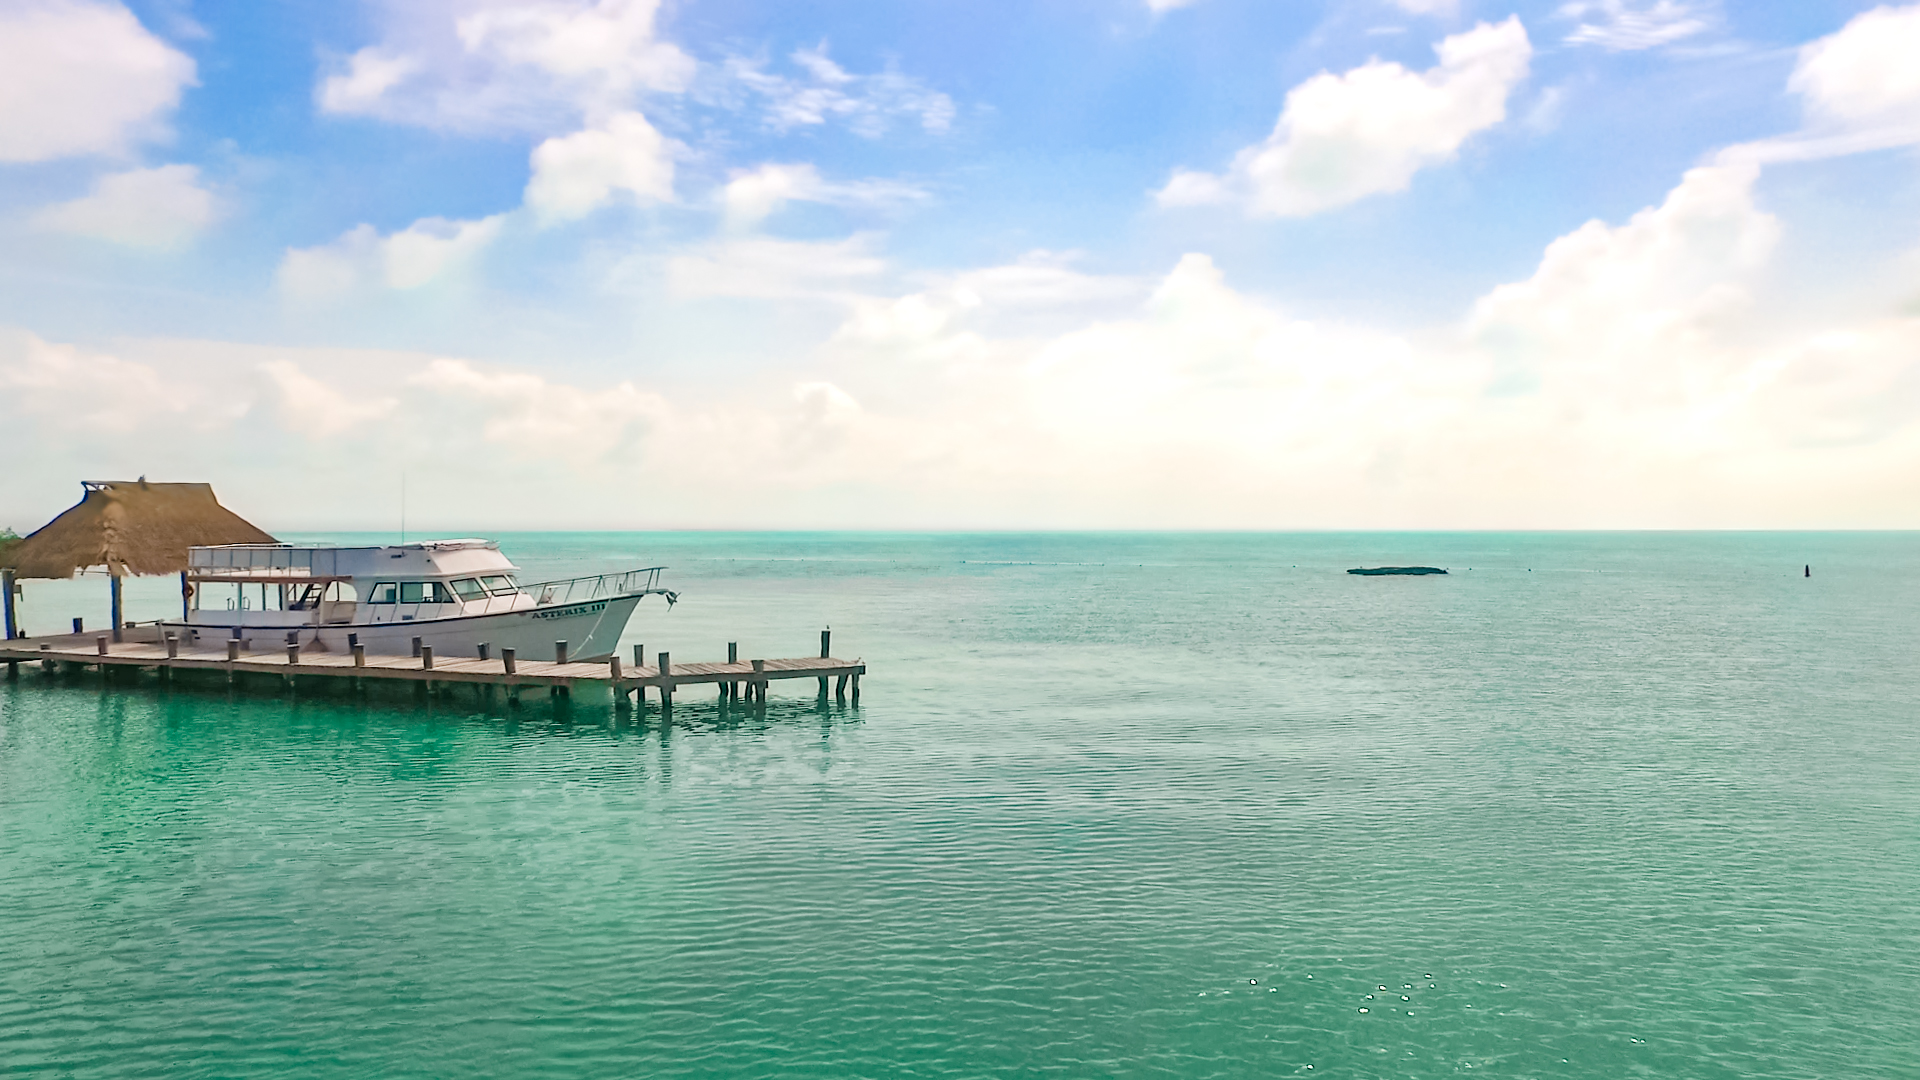 04 - LoRes - Isla Contoy Tour - Dock boat